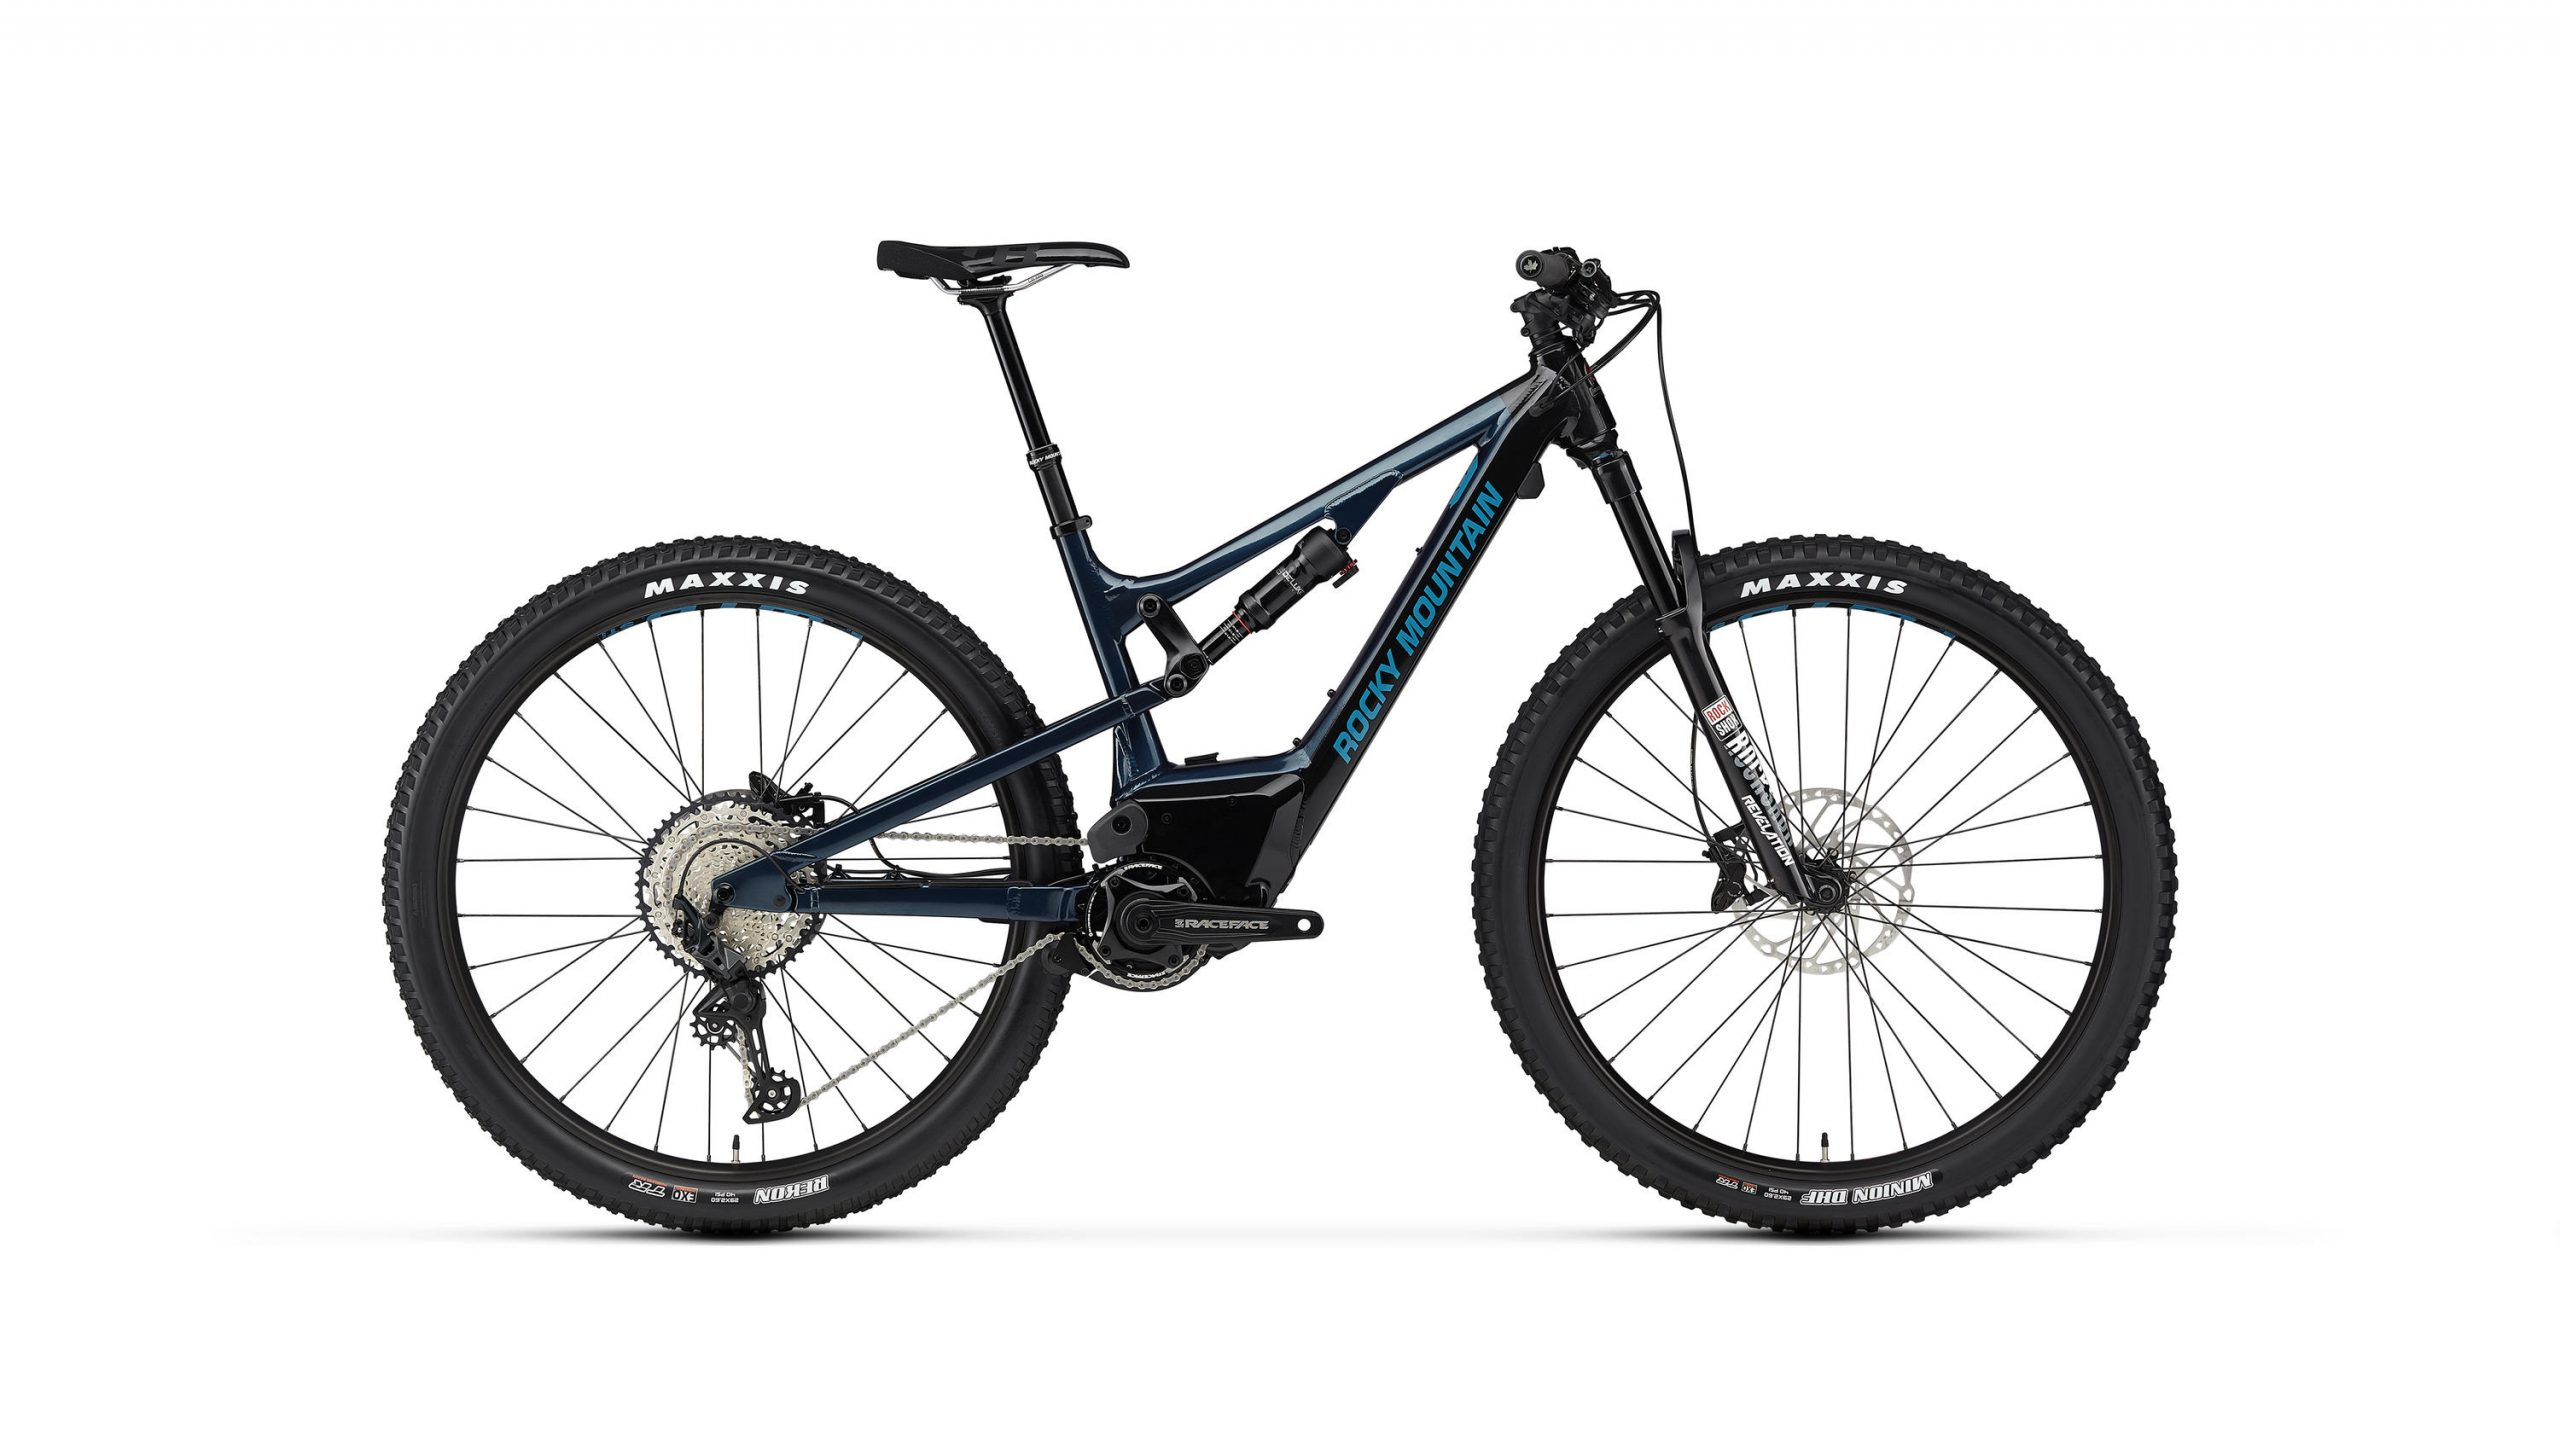 2020 ROCKY MOUNTAIN POWERPLAY INSTINCT A50